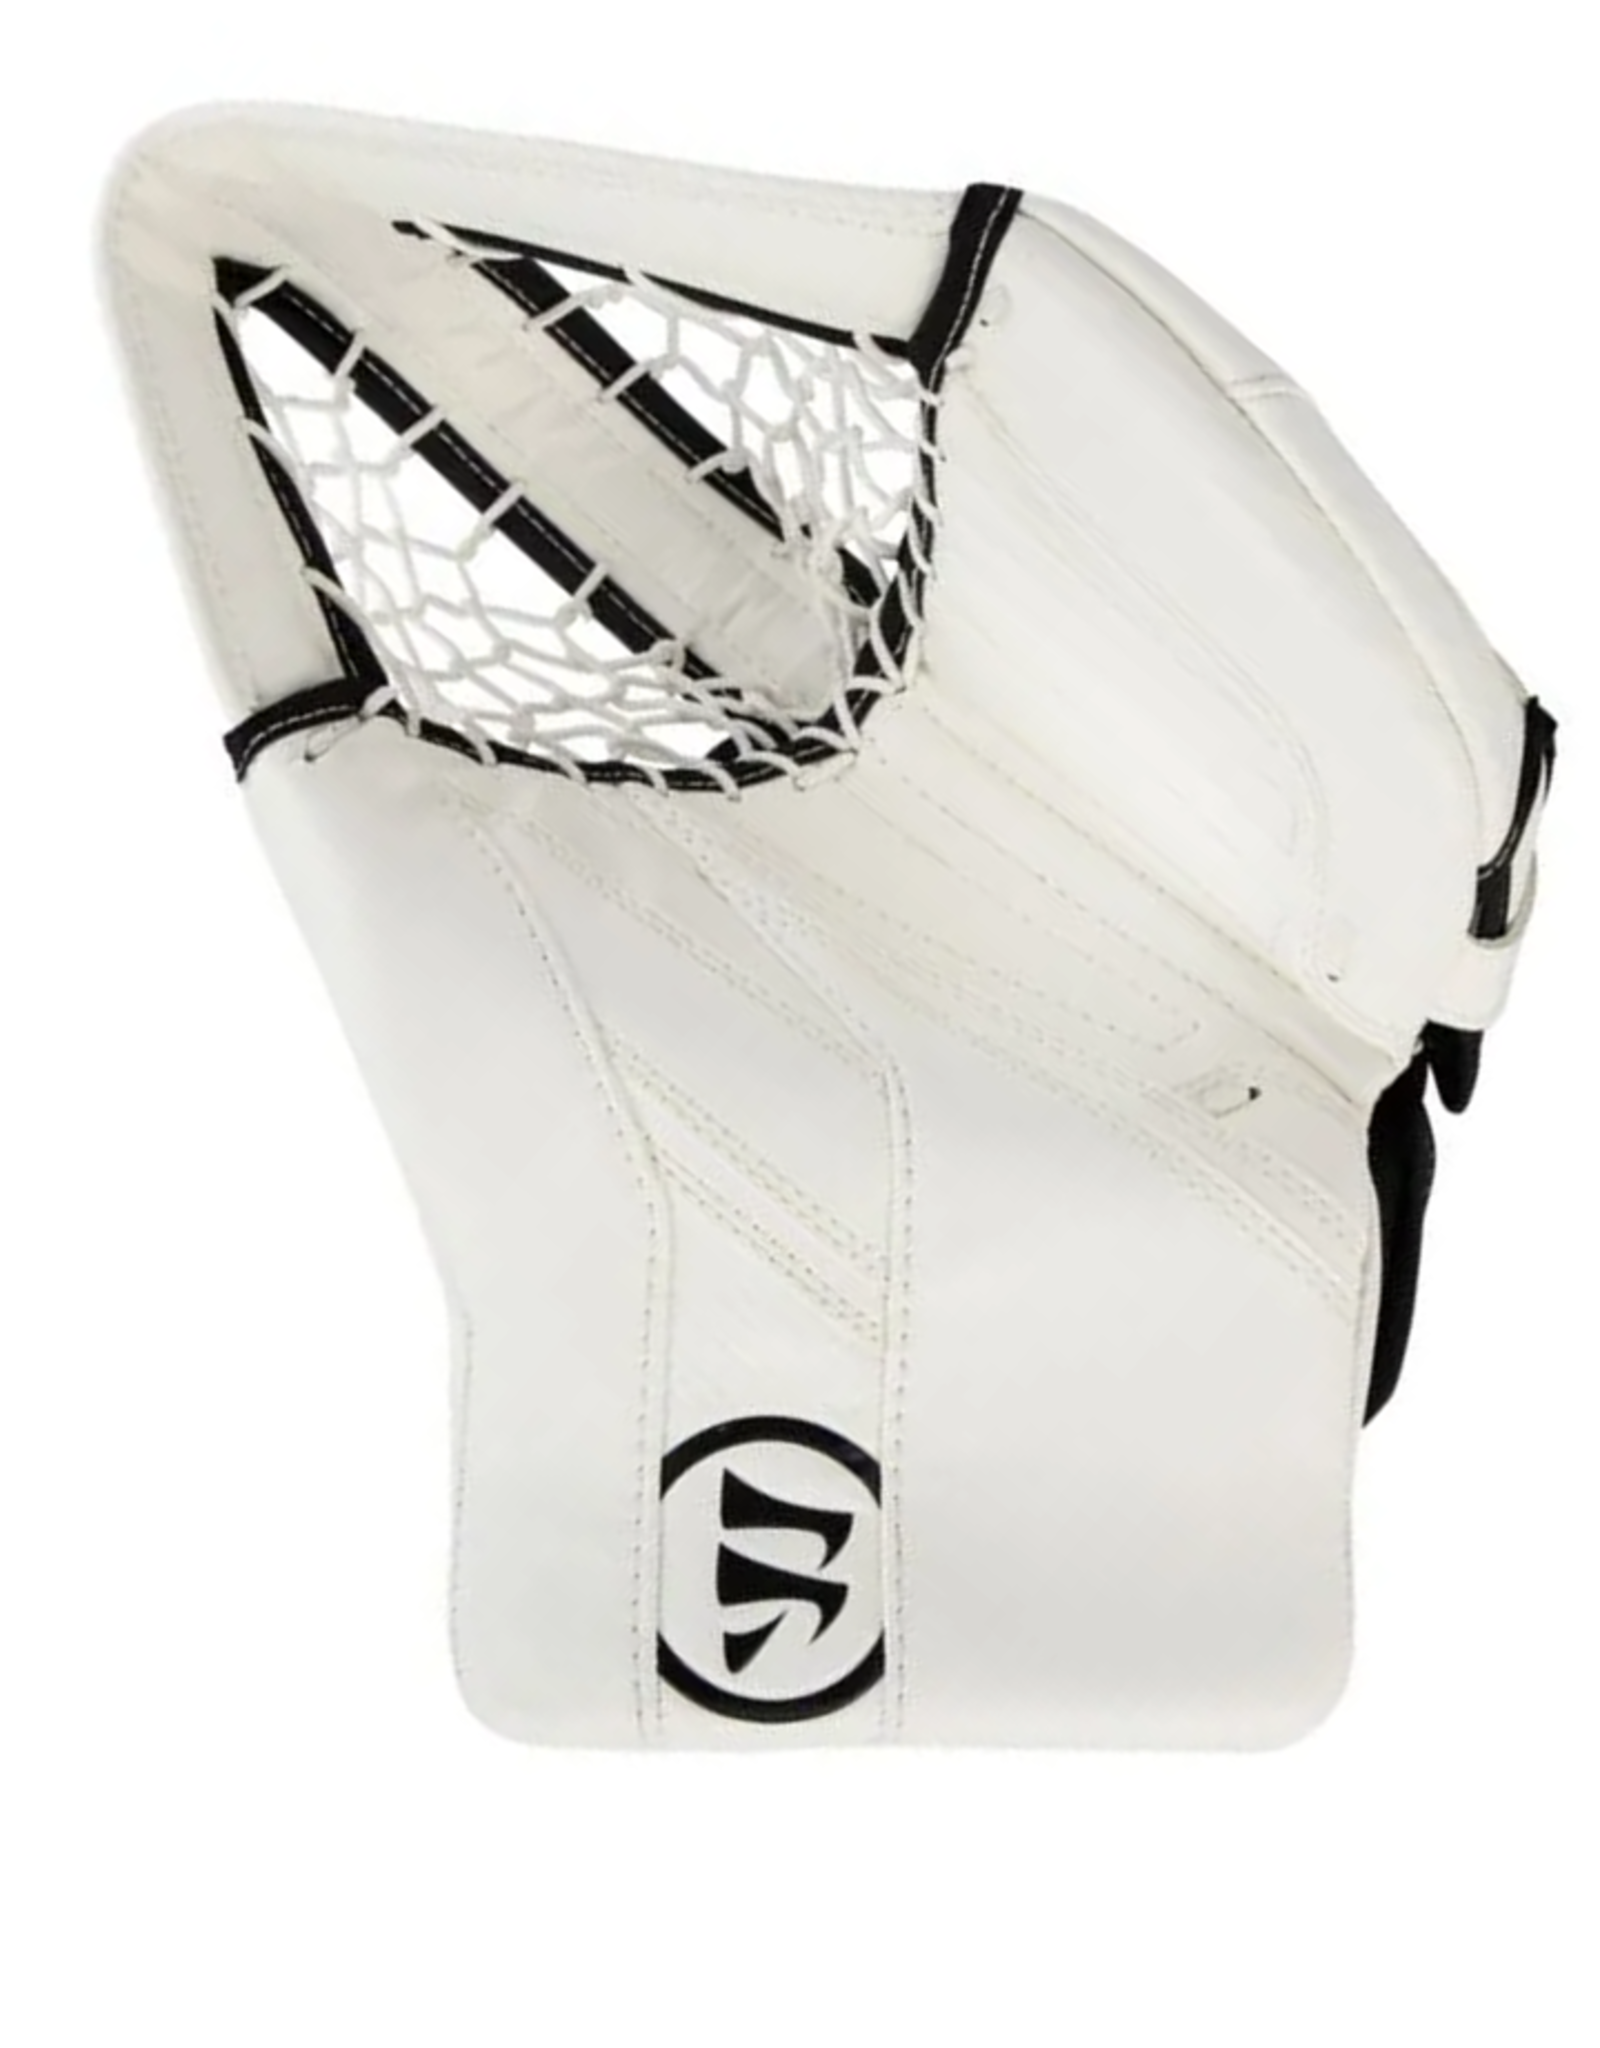 Warrior Ritual G5 Int Goalie Glove